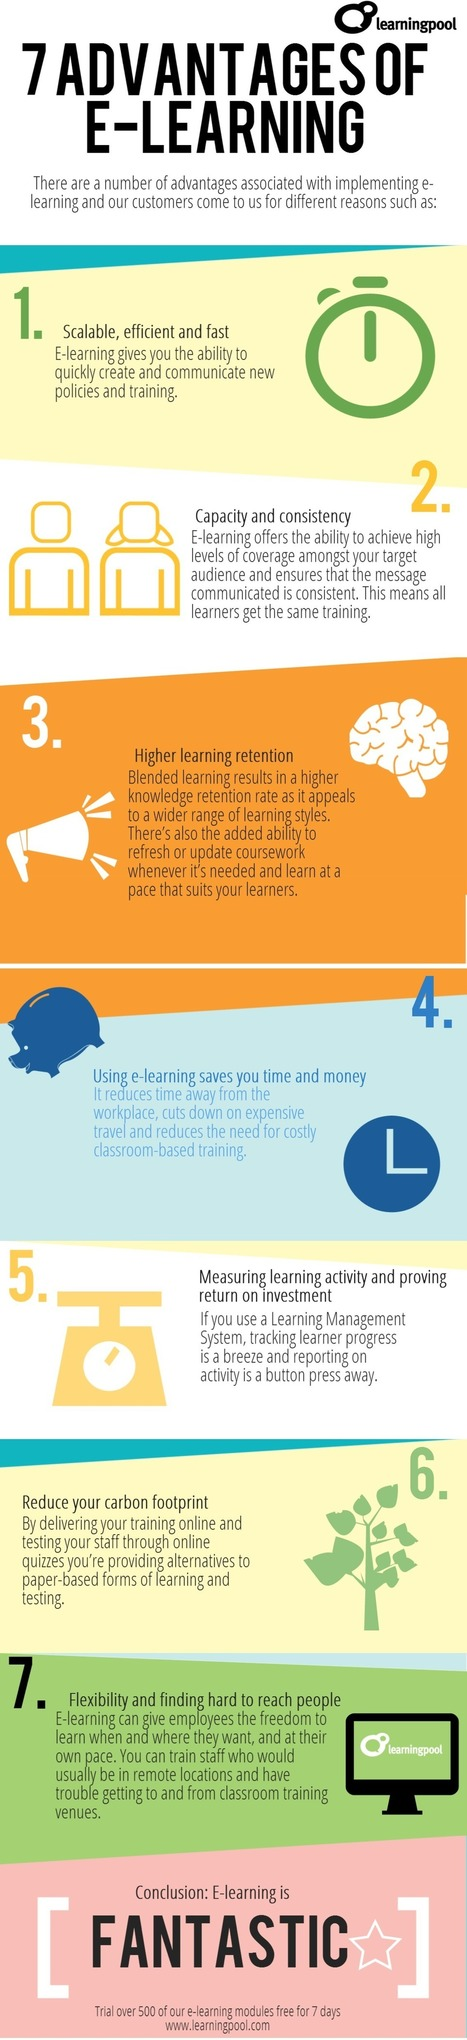 7 Advantages of E-learning -  Infographic | Inclusive Education | Scoop.it